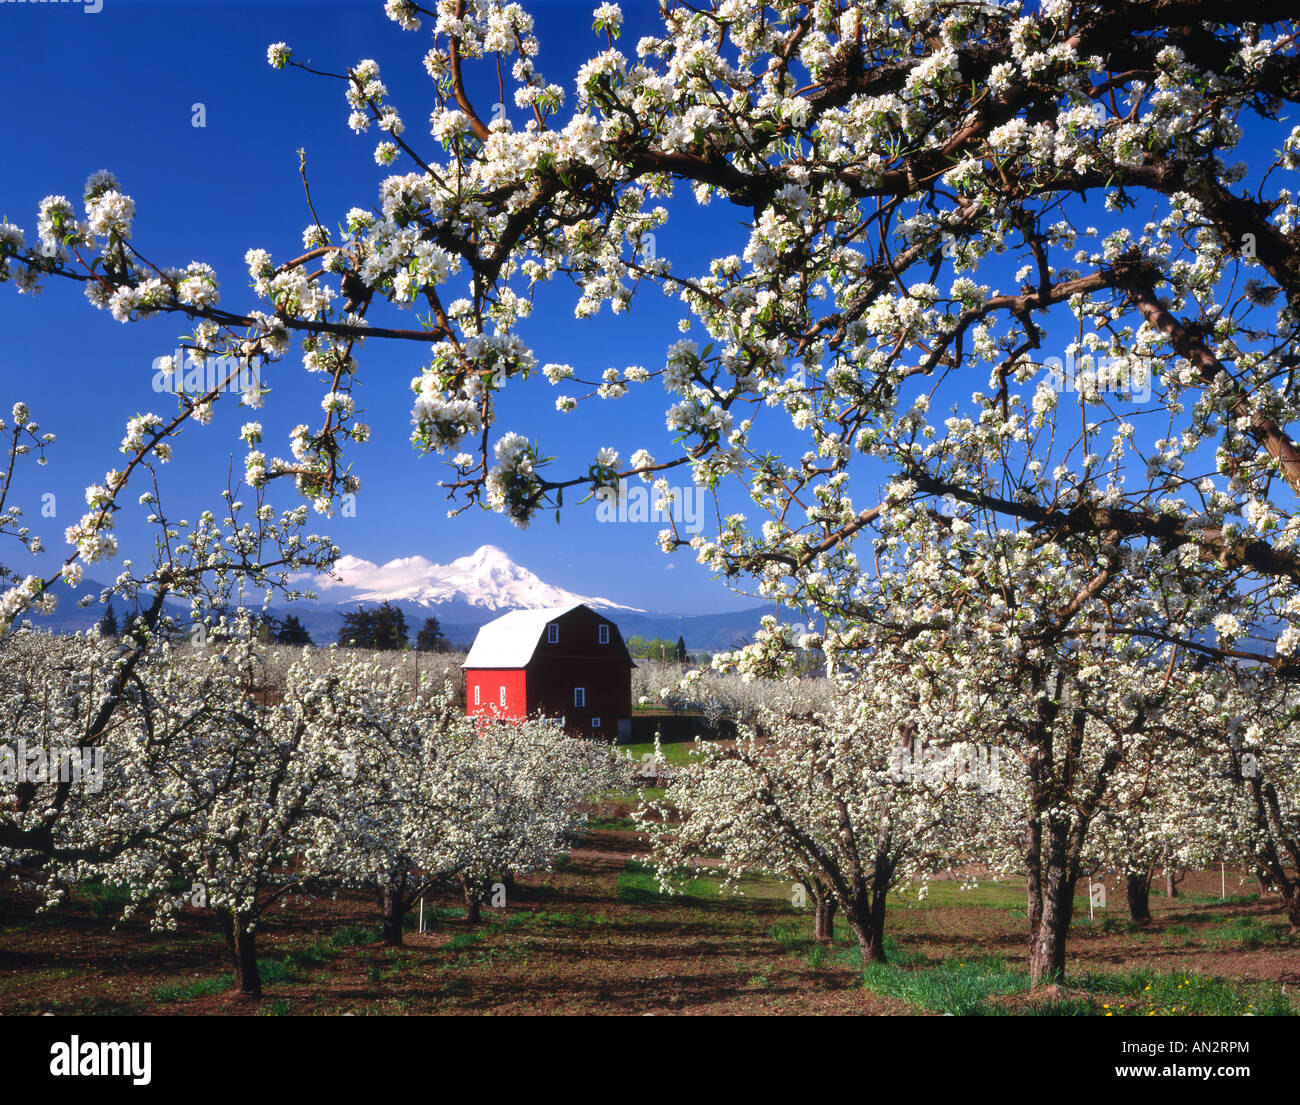 USA, Oregon, Hood River Valley, Pear orchard in bloom framing red ...